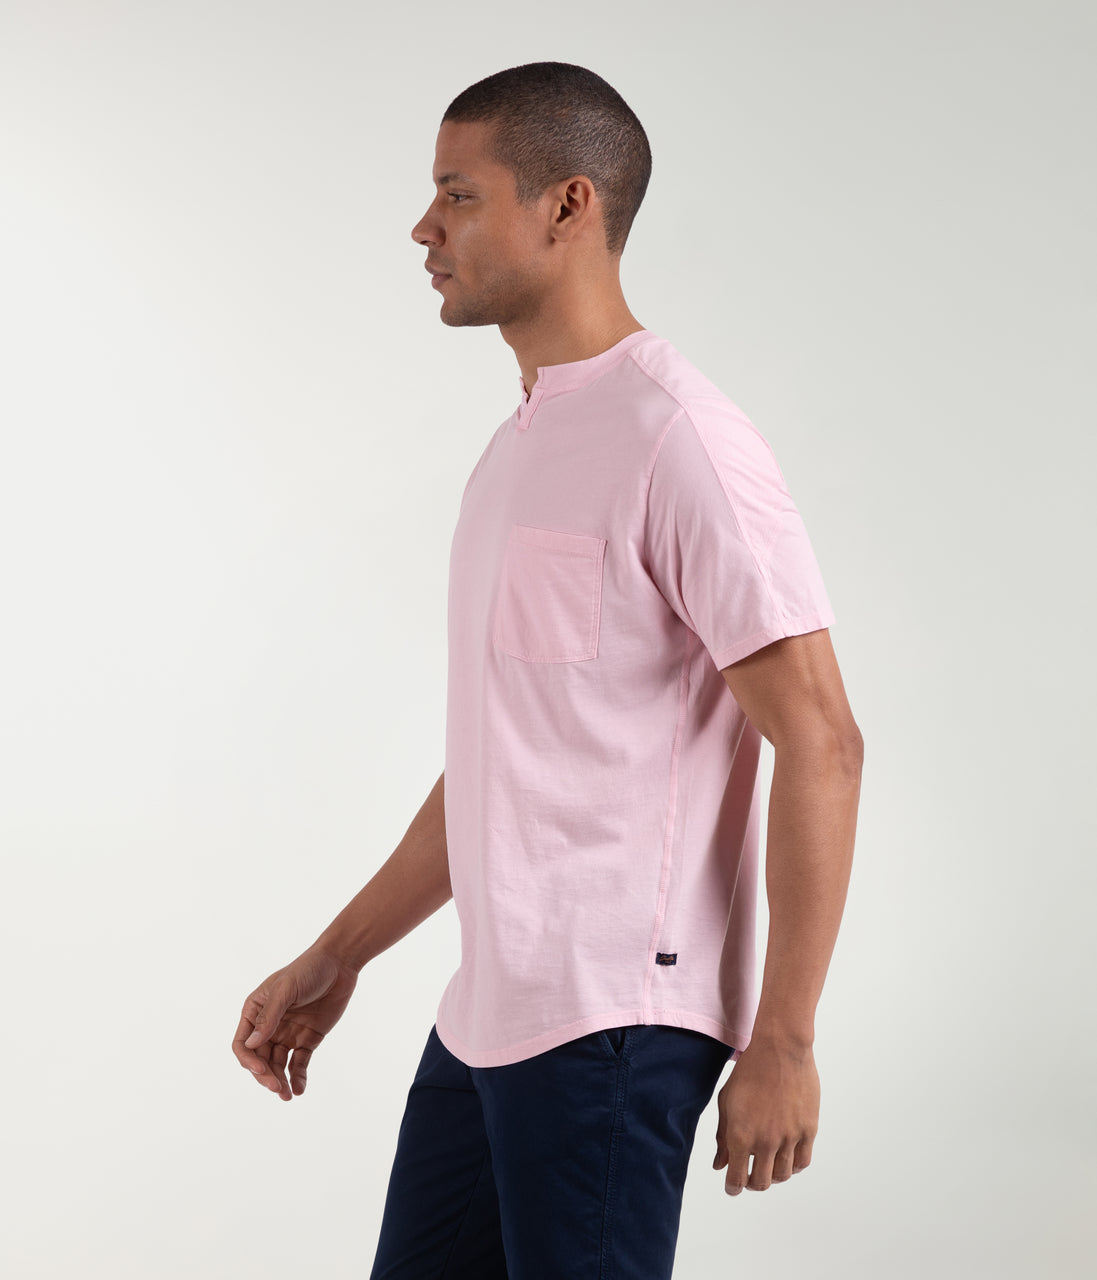 Premium Cotton Jersey Notch Neck Crew - Rose - Good Man Brand - Premium Cotton Jersey Notch Neck Crew - Rose